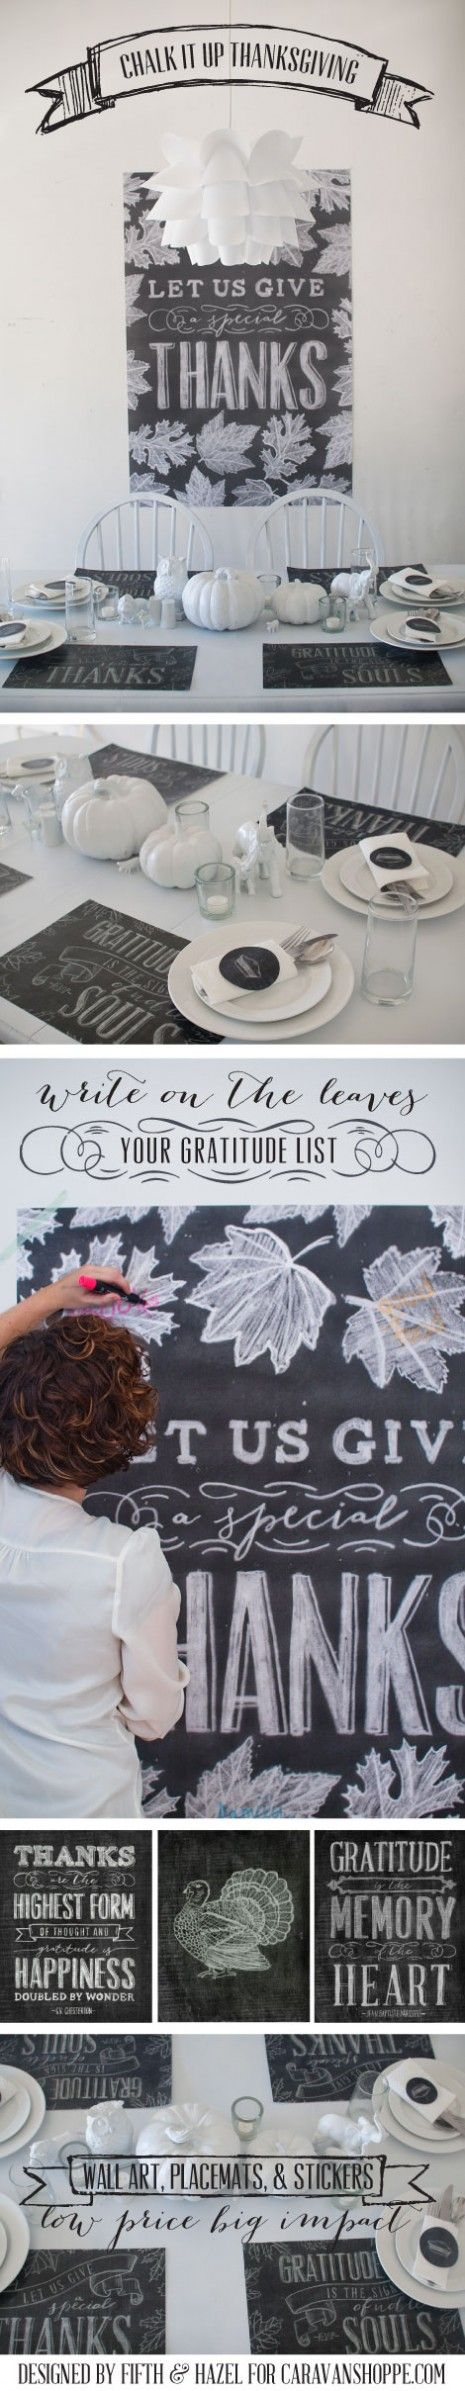 best images about party ideas on pinterest